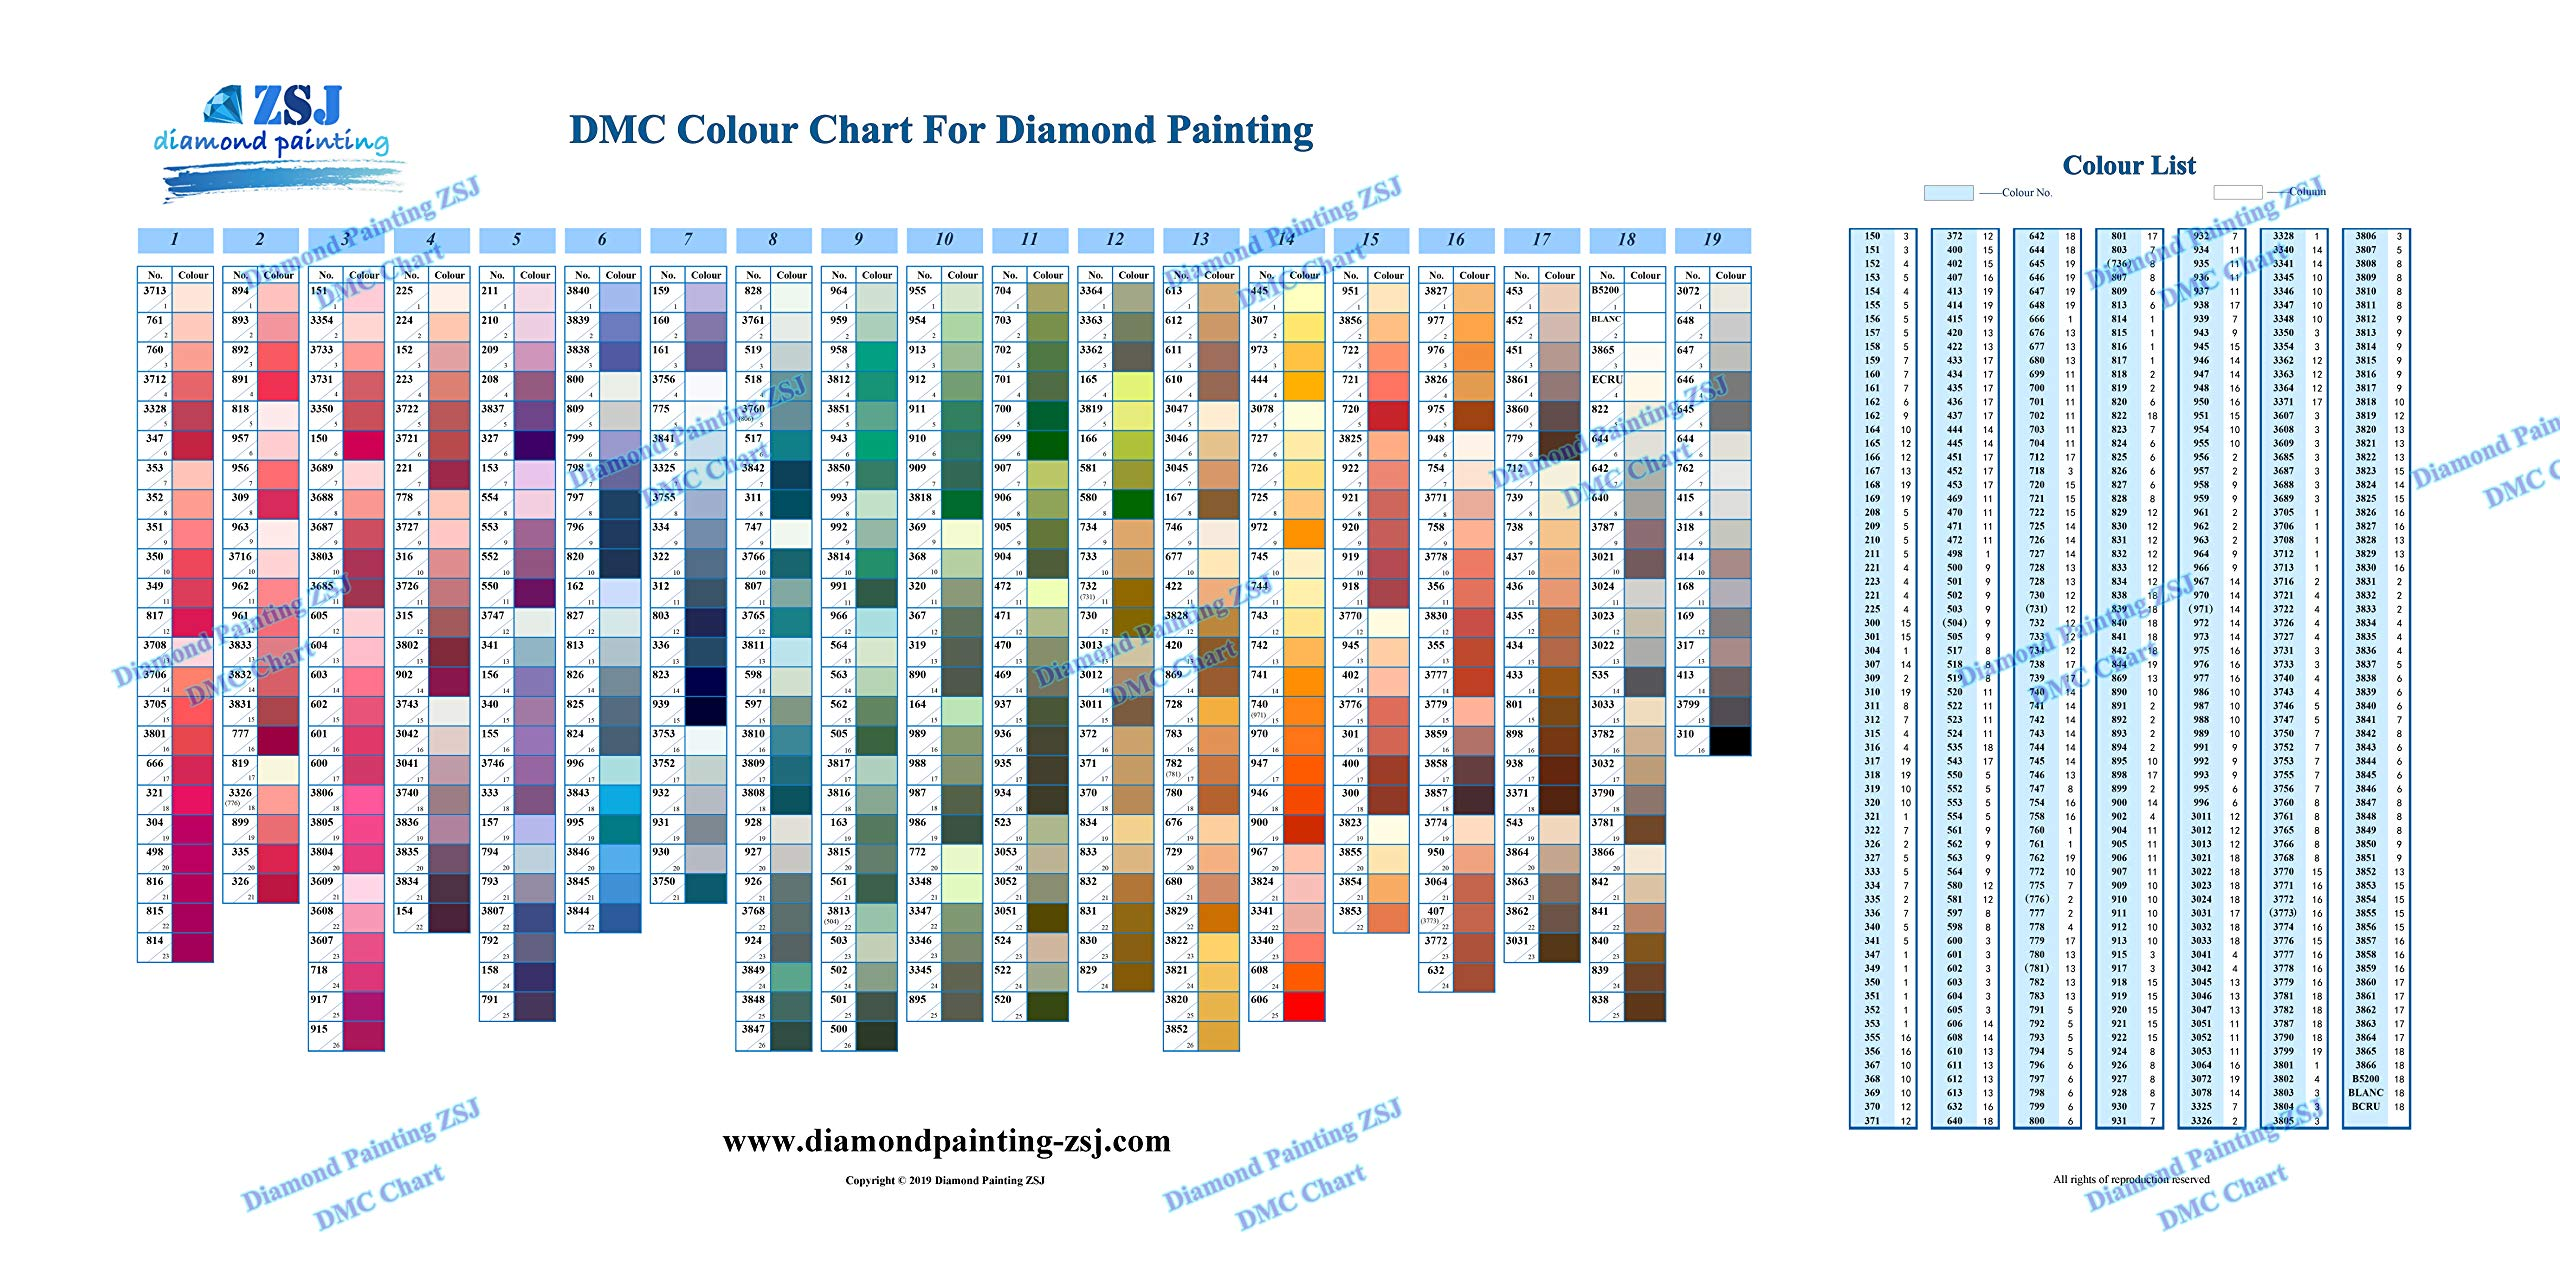 DMC Color Chart for Diamond Painting The Complete Table 2019 DMC All Color Card by ZSJ Diamond Painting